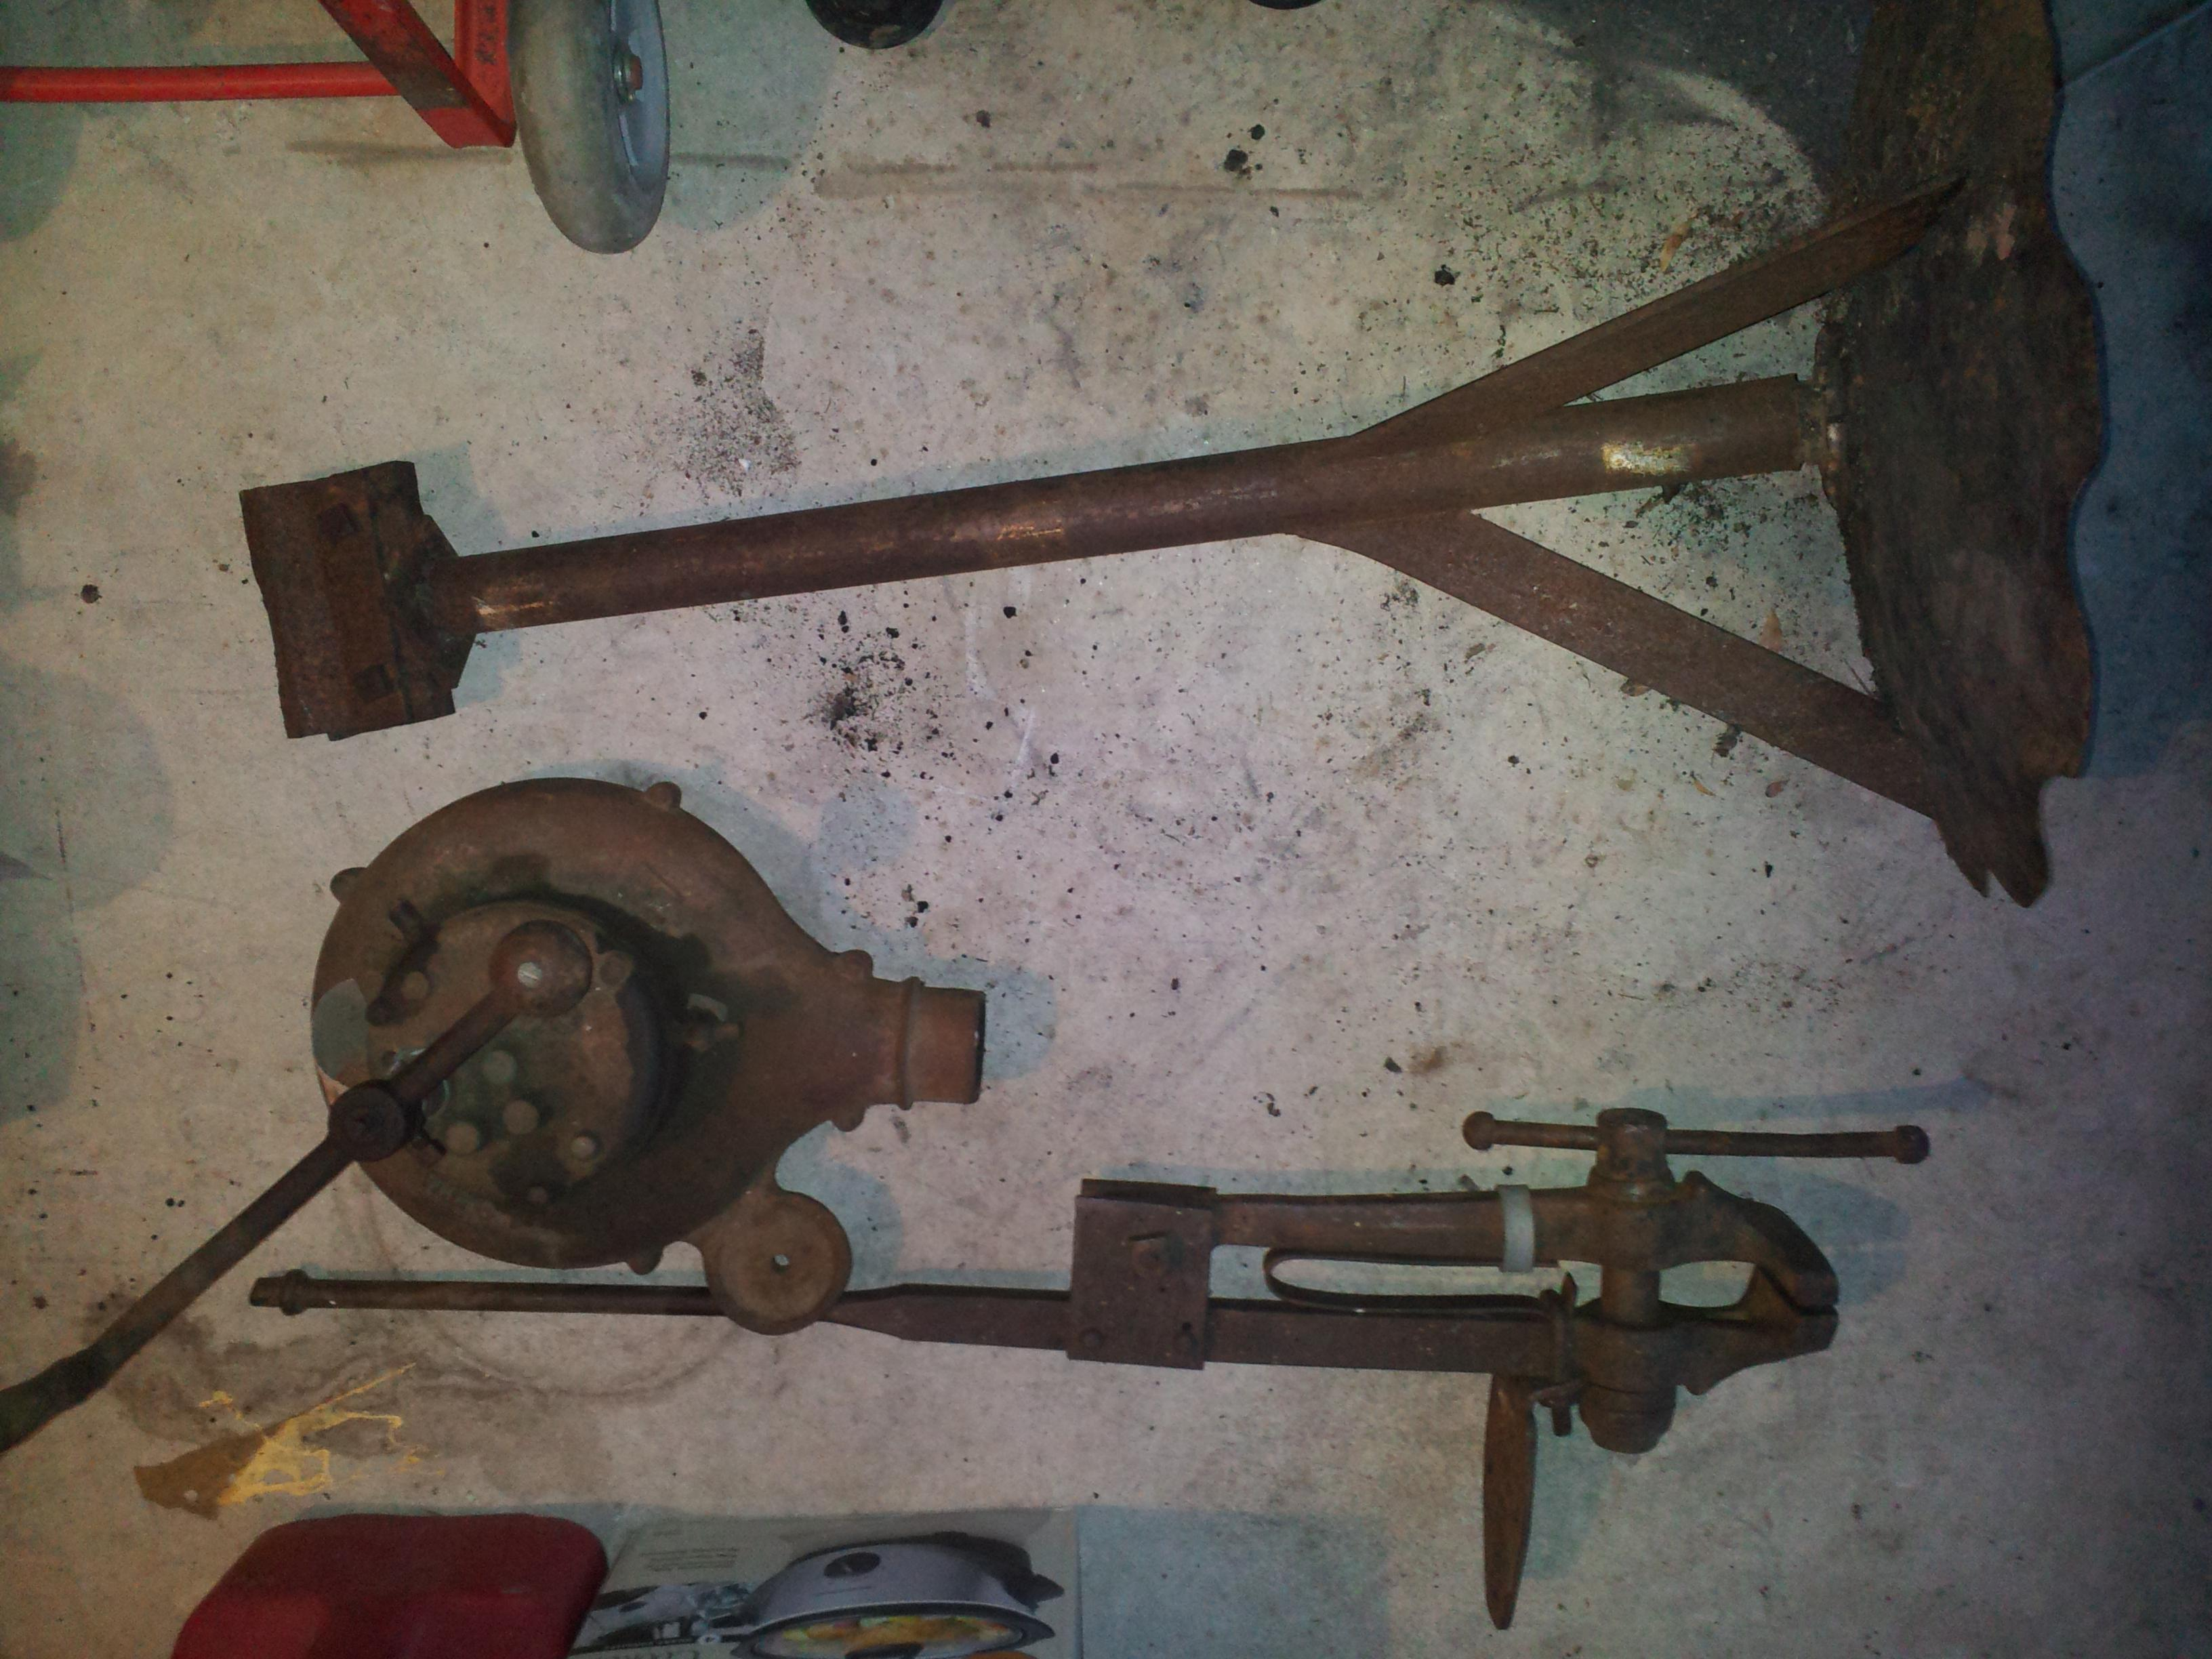 Blower, Leg Vice, and some sort of stand